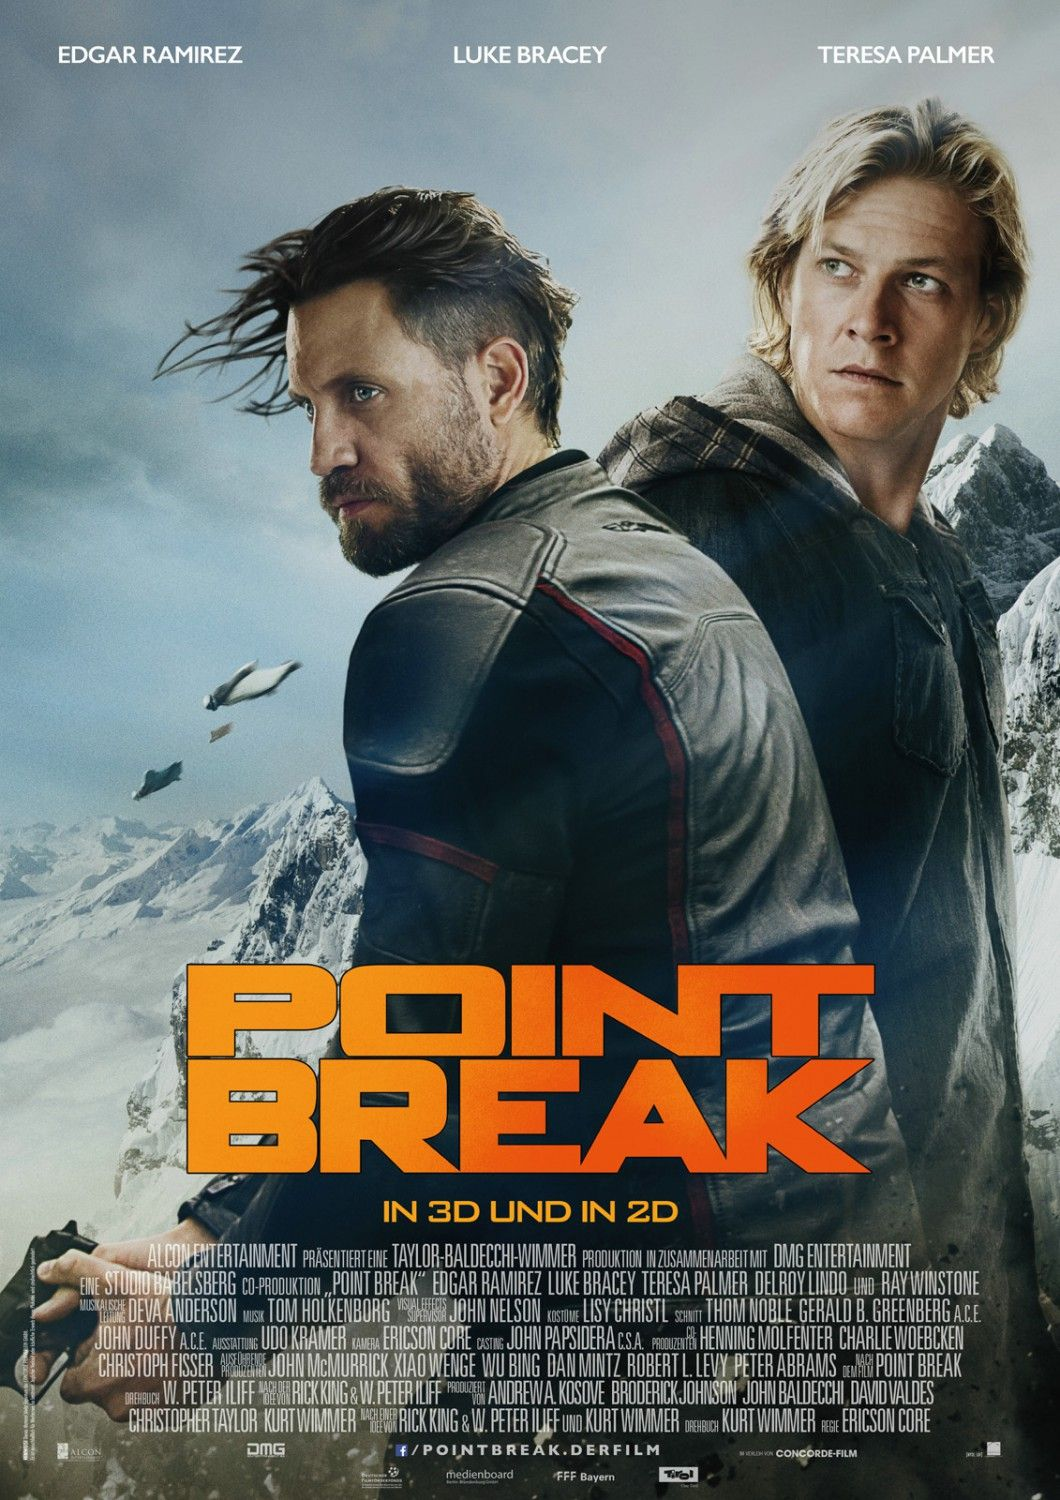 A good movie for all to enjoy .Amazing scenery and sporting scenes